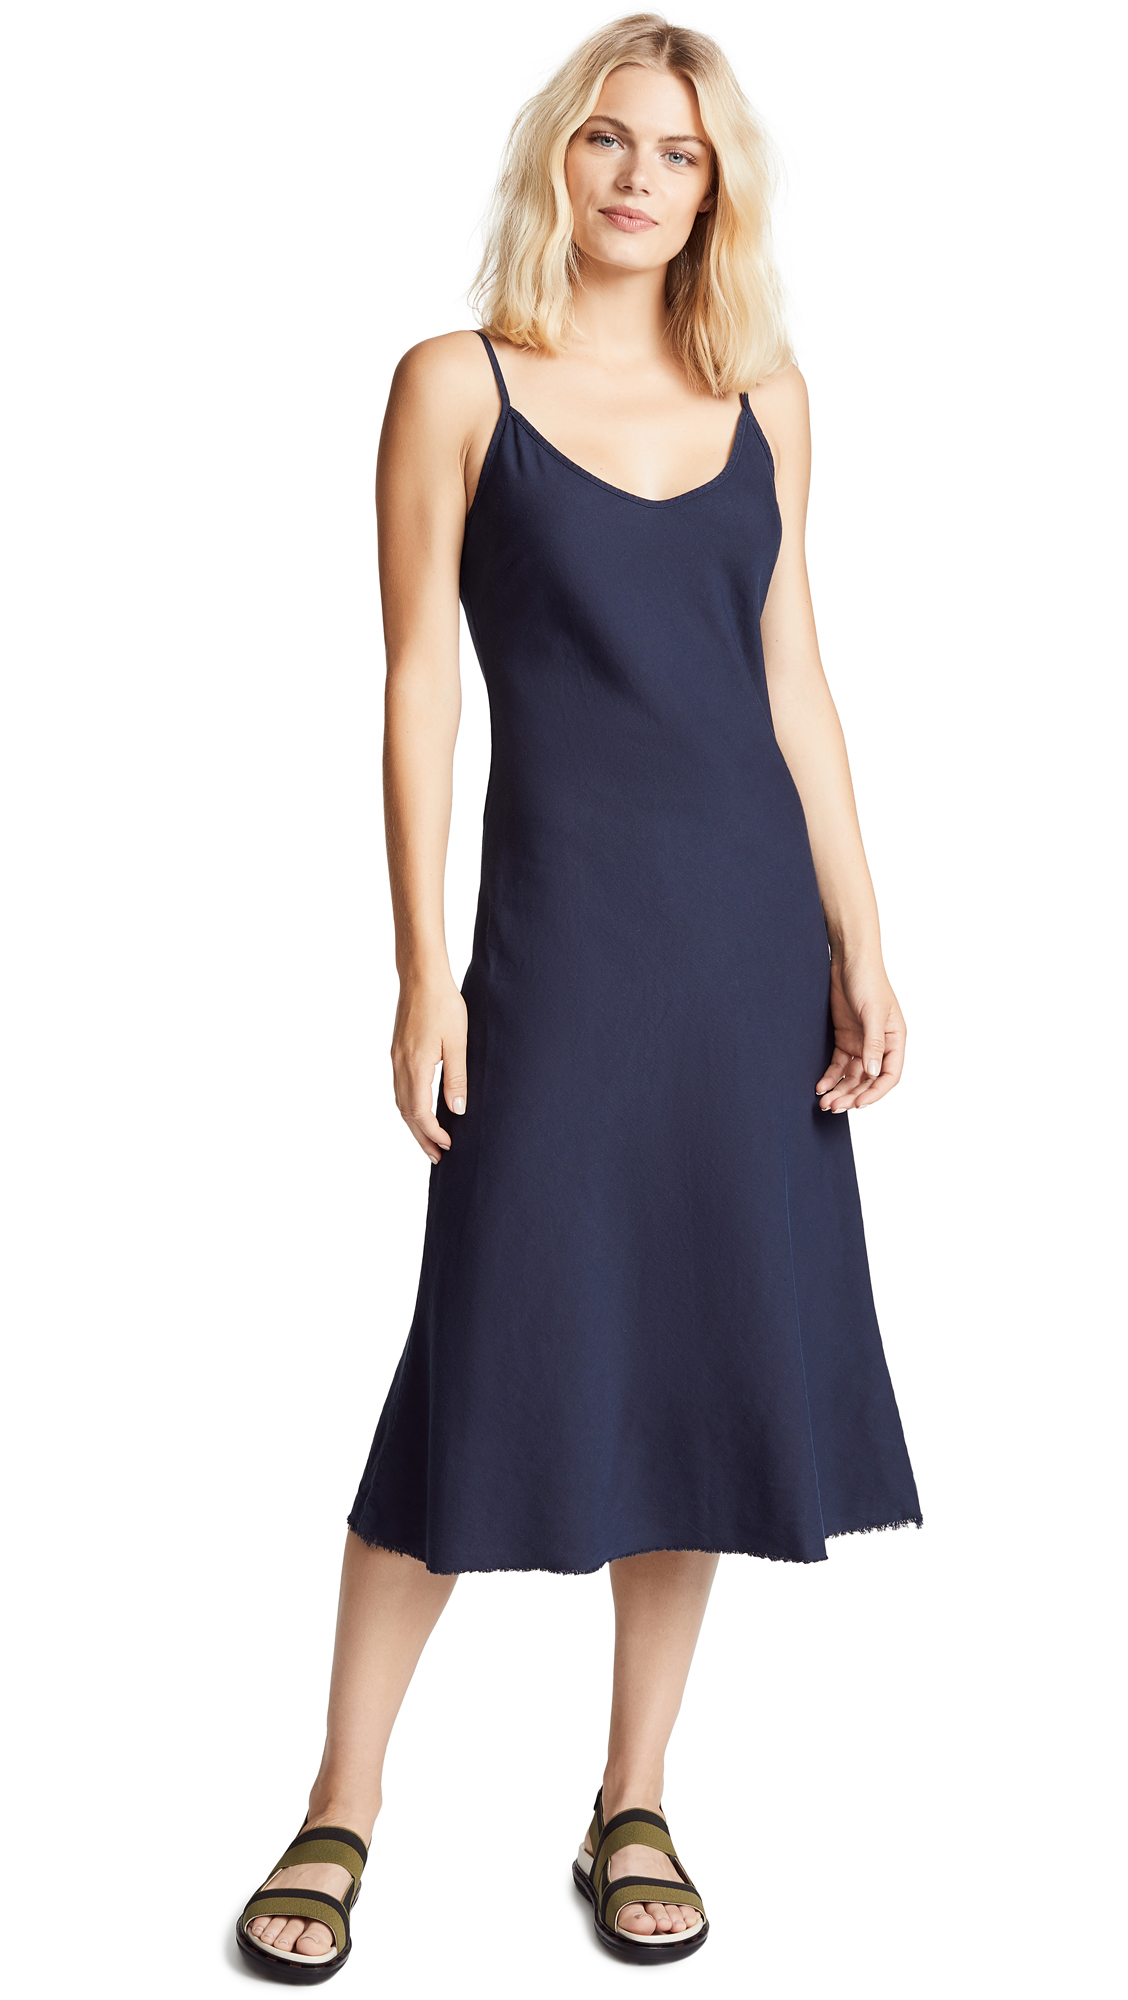 MOTHER The Slip Up Dress